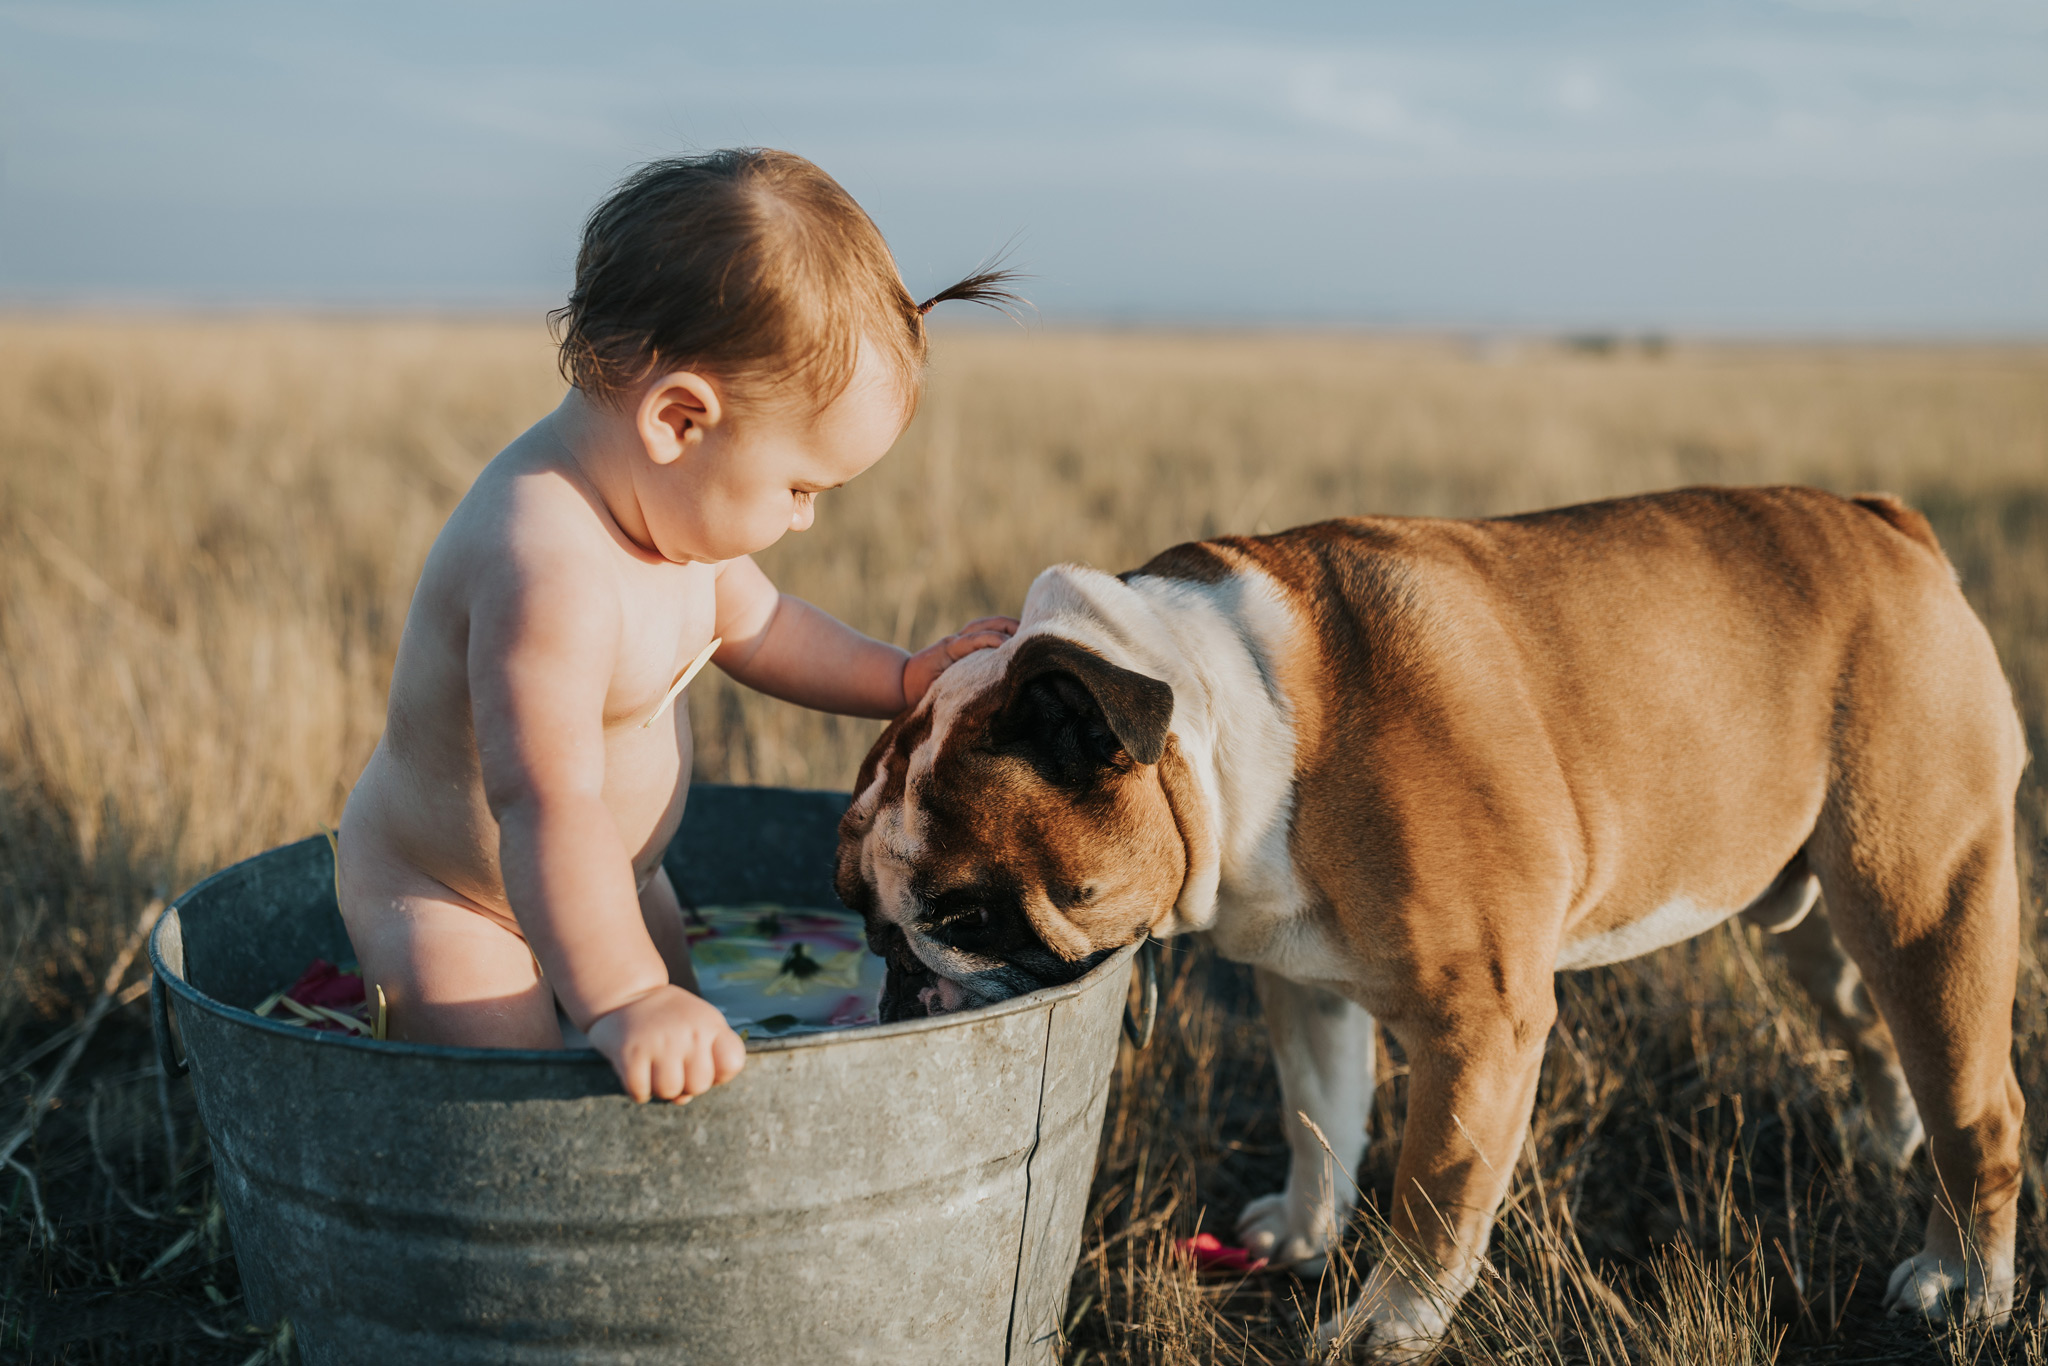 baby standing in milk bath petting pet bulldog